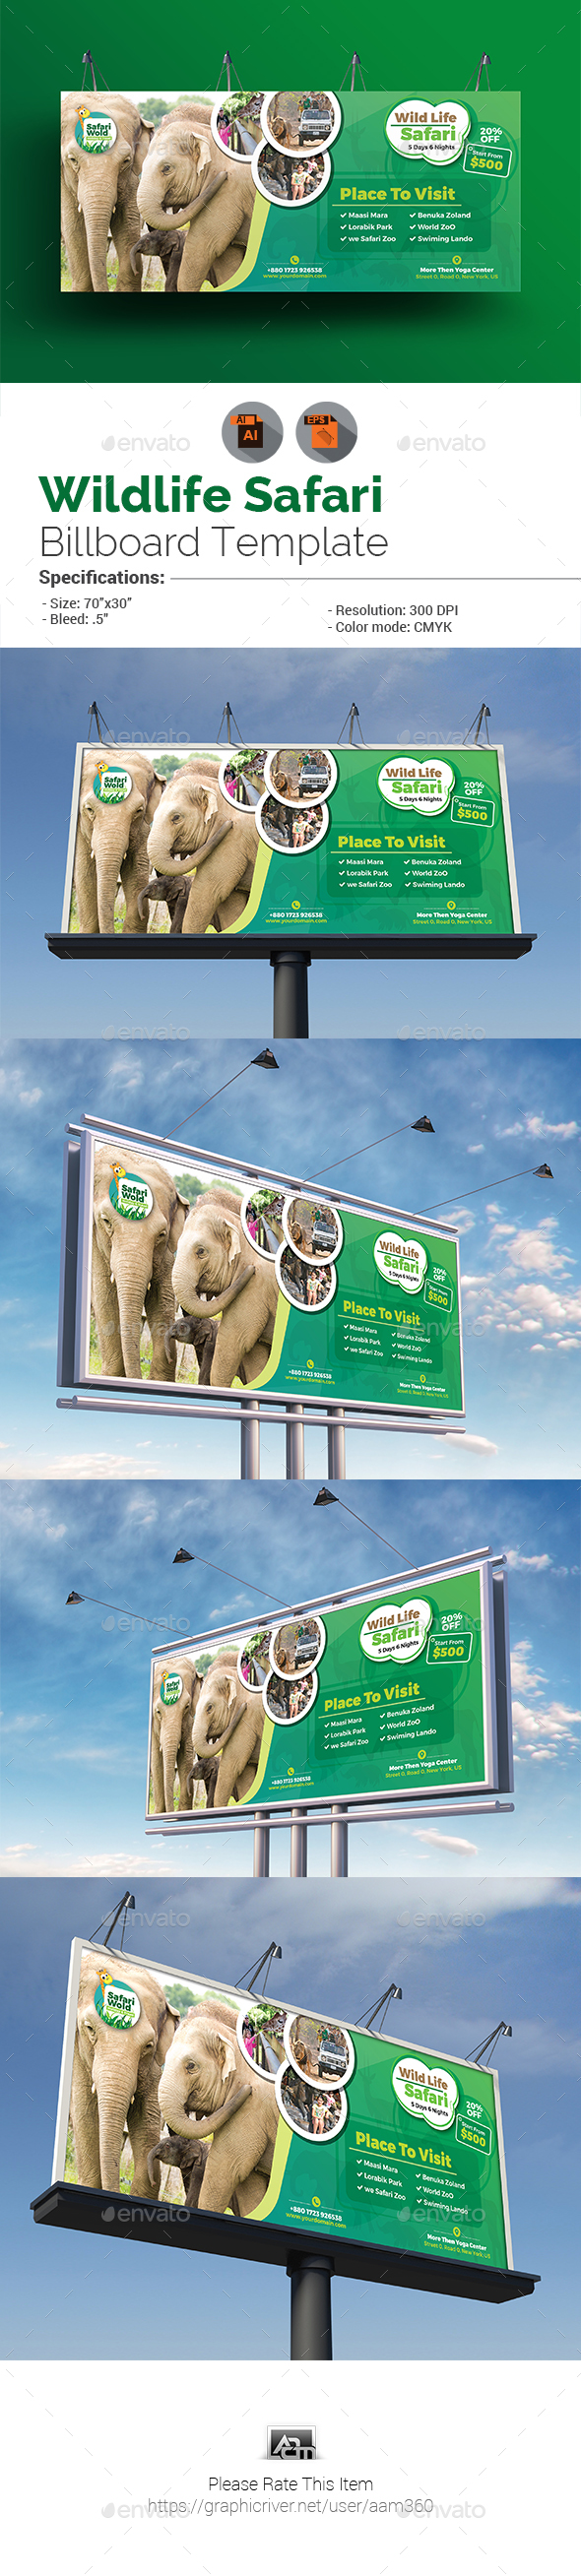 Wildlife Safari Billboard Template - Signage Print Templates